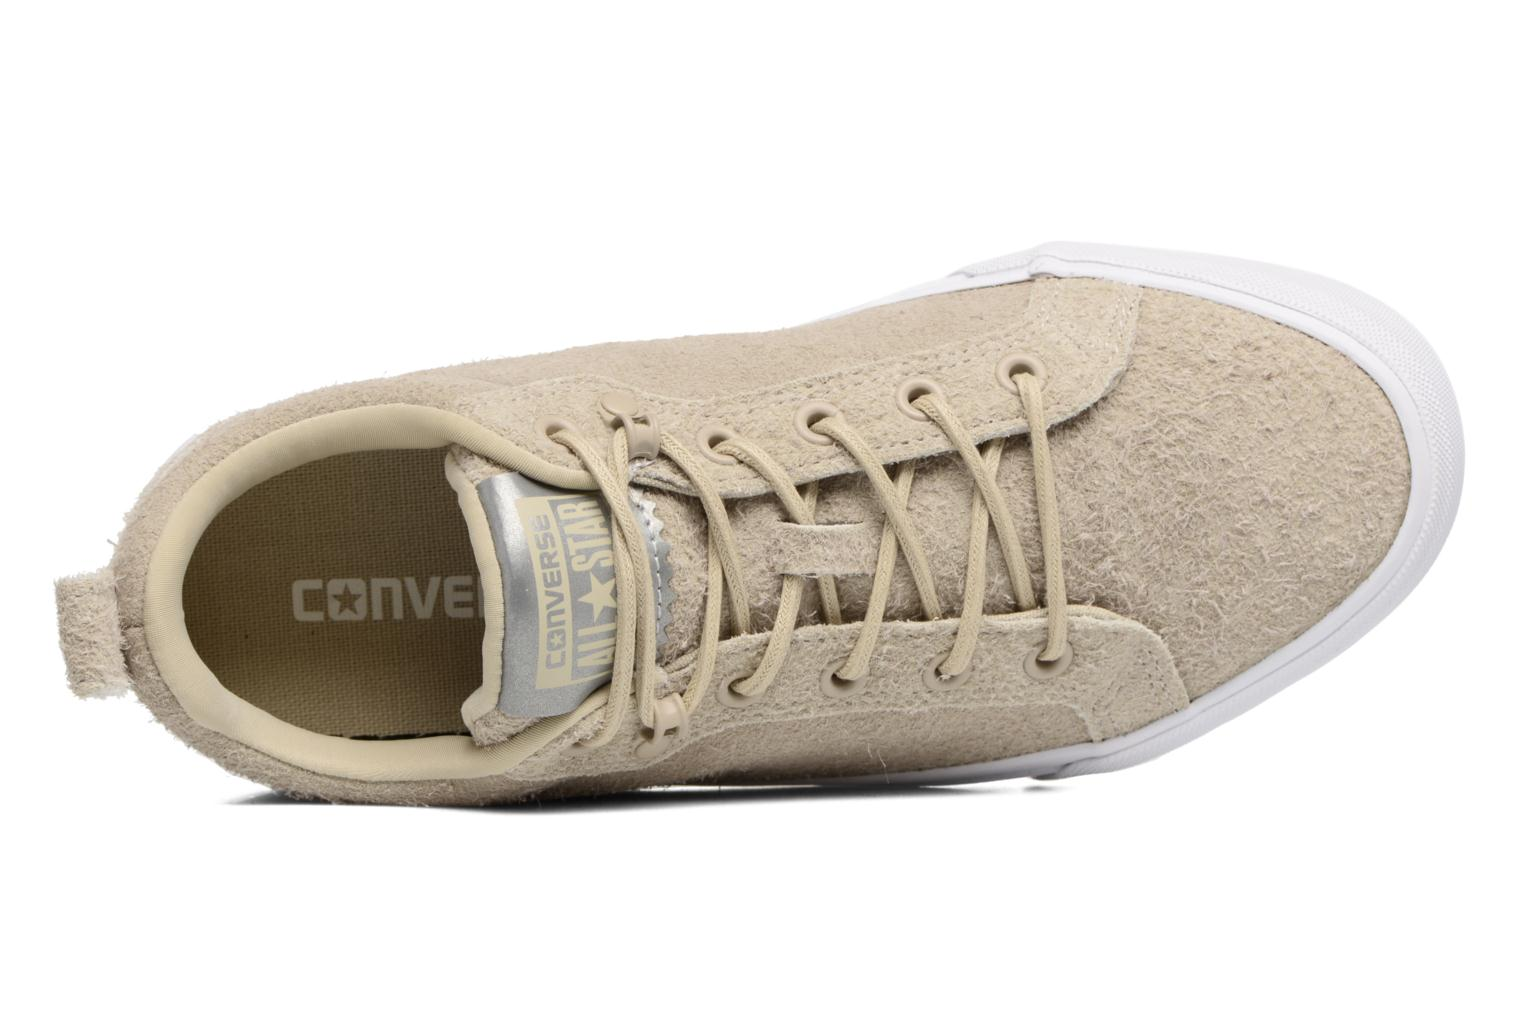 2143f28567e ... Converse Chuck Taylor All All All Star Fulton Wooly Bully Ox (Beige) -  Baskets ...